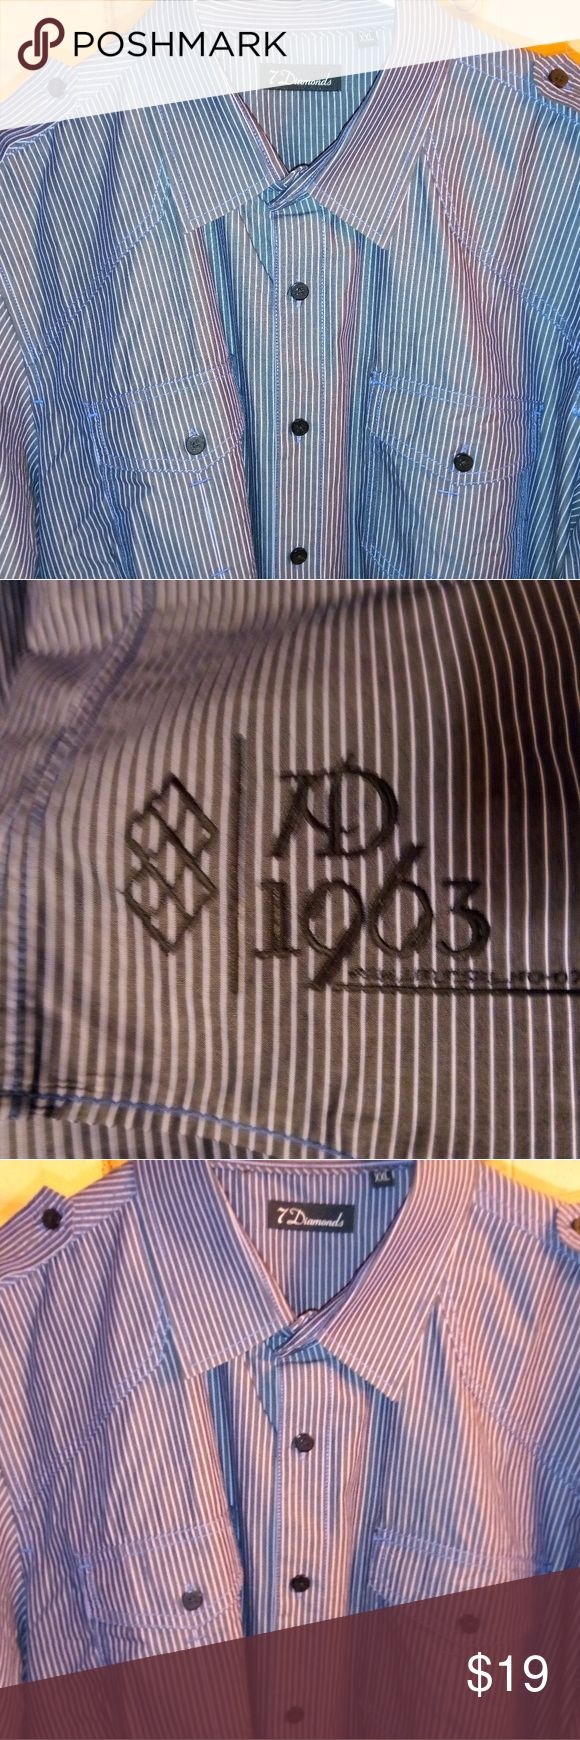 7 Diamonds XXL men's button down with embroidery Like NEW!! Men's 7 Diamonds button down in XXL.  Button down flaps on the shoulders like a military style shirt. 7 Diamonds Shirts Casual Button Down Shirts